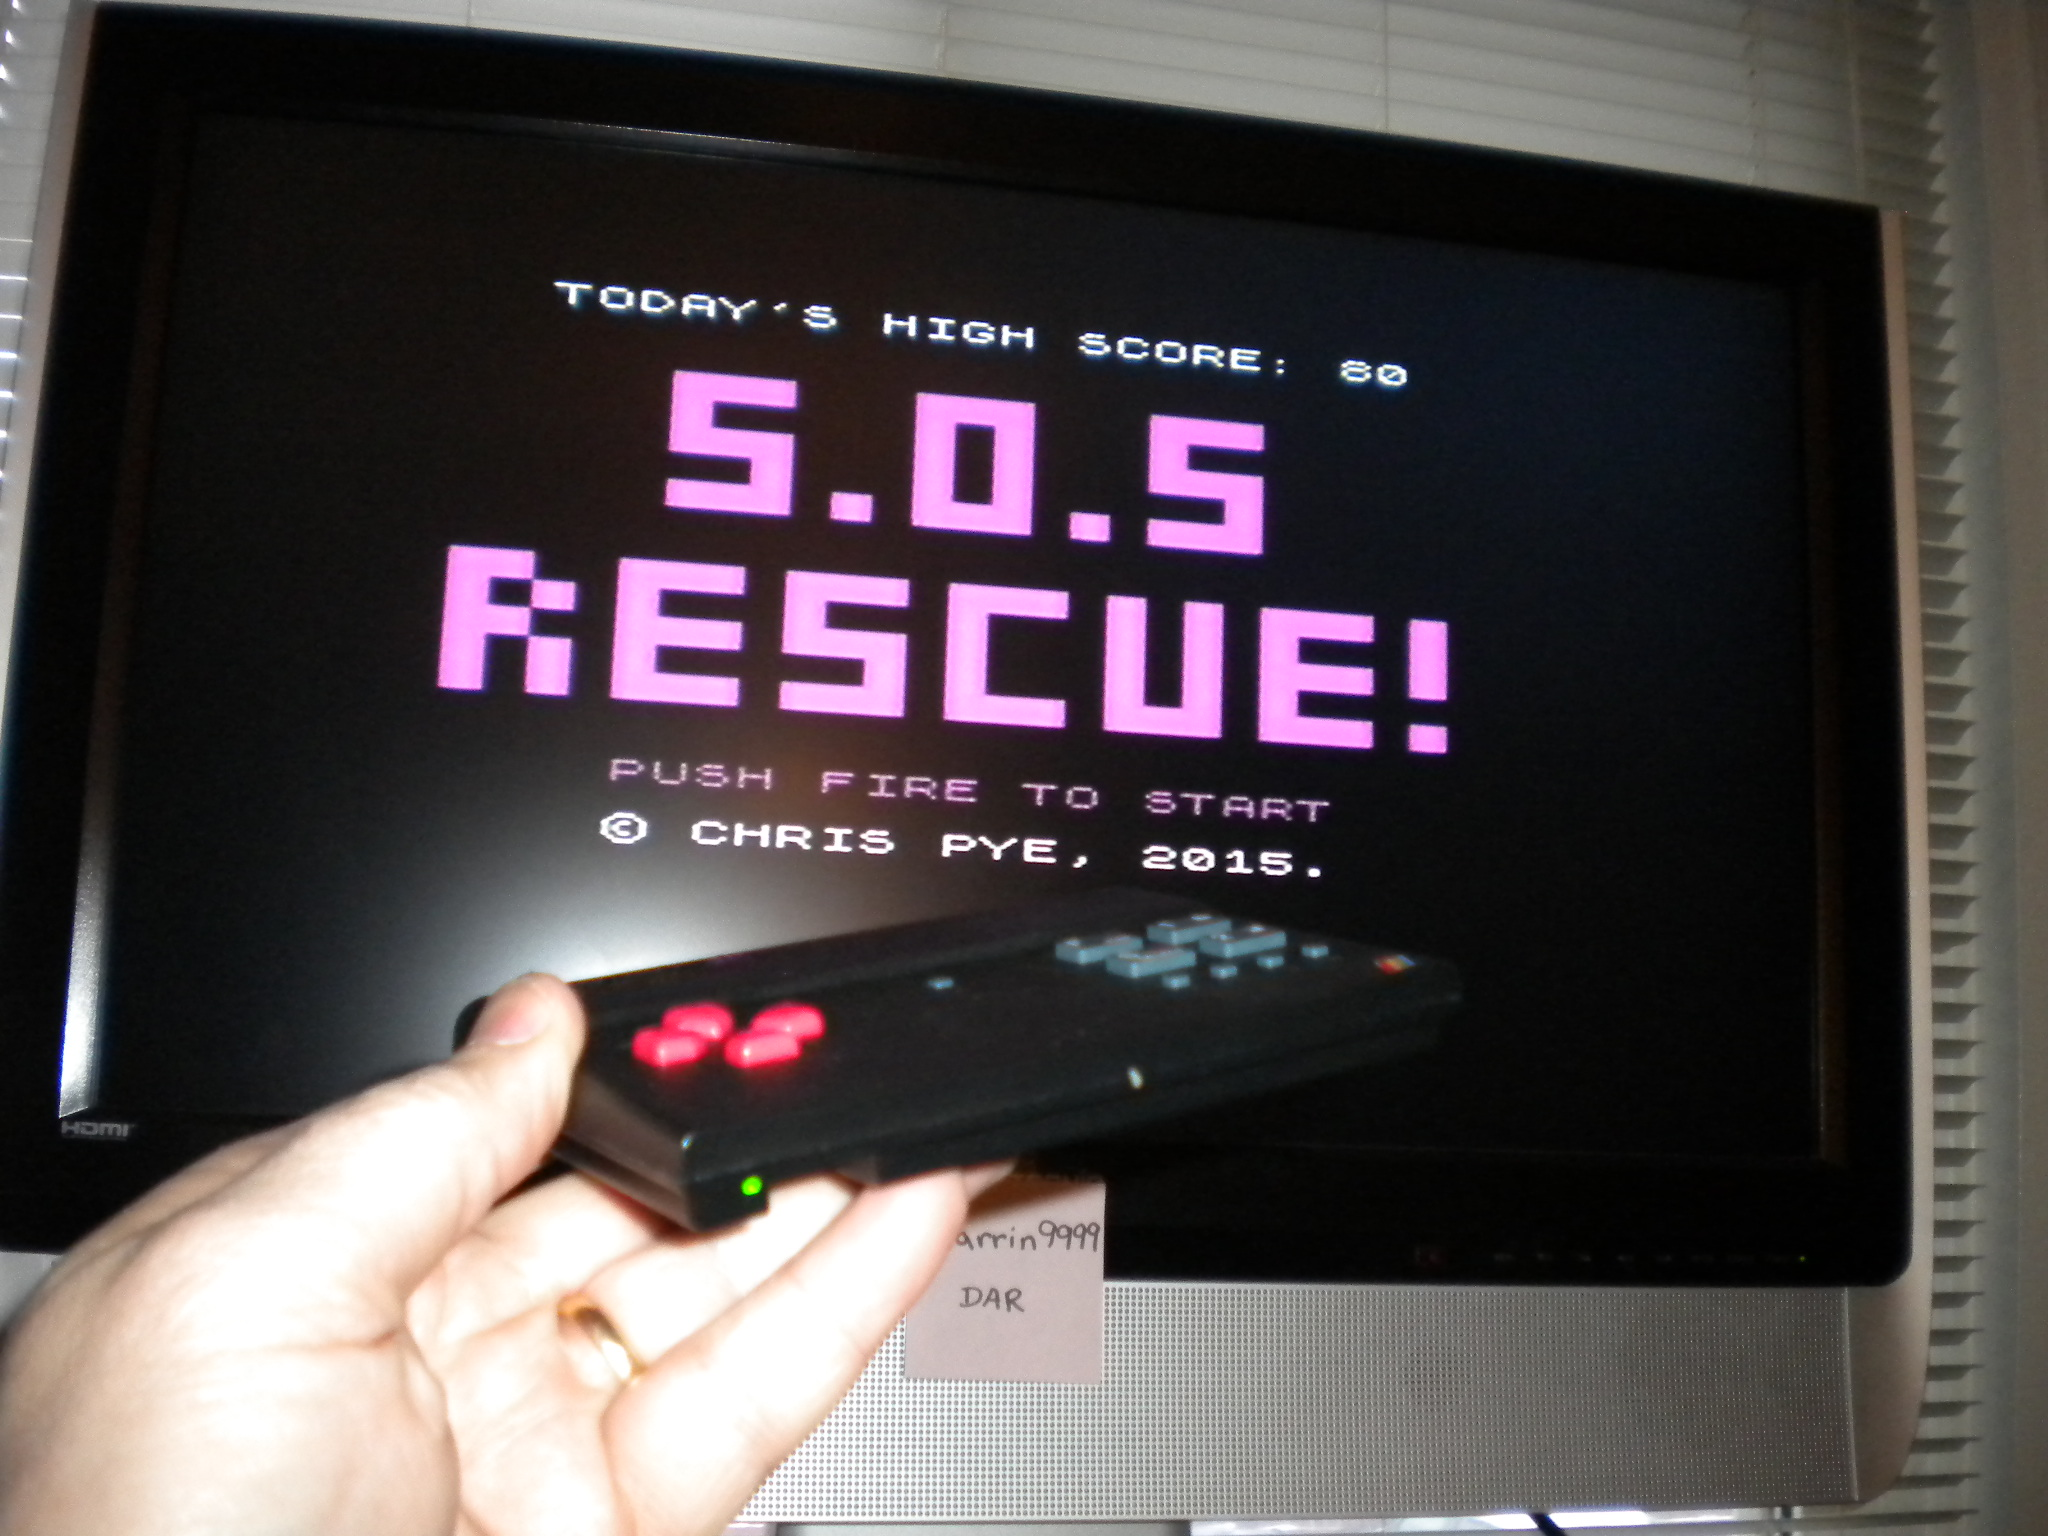 darrin9999: S.O.S Rescue! [Chris Pye] (ZX Spectrum Emulated) 80 points on 2016-12-19 22:35:33